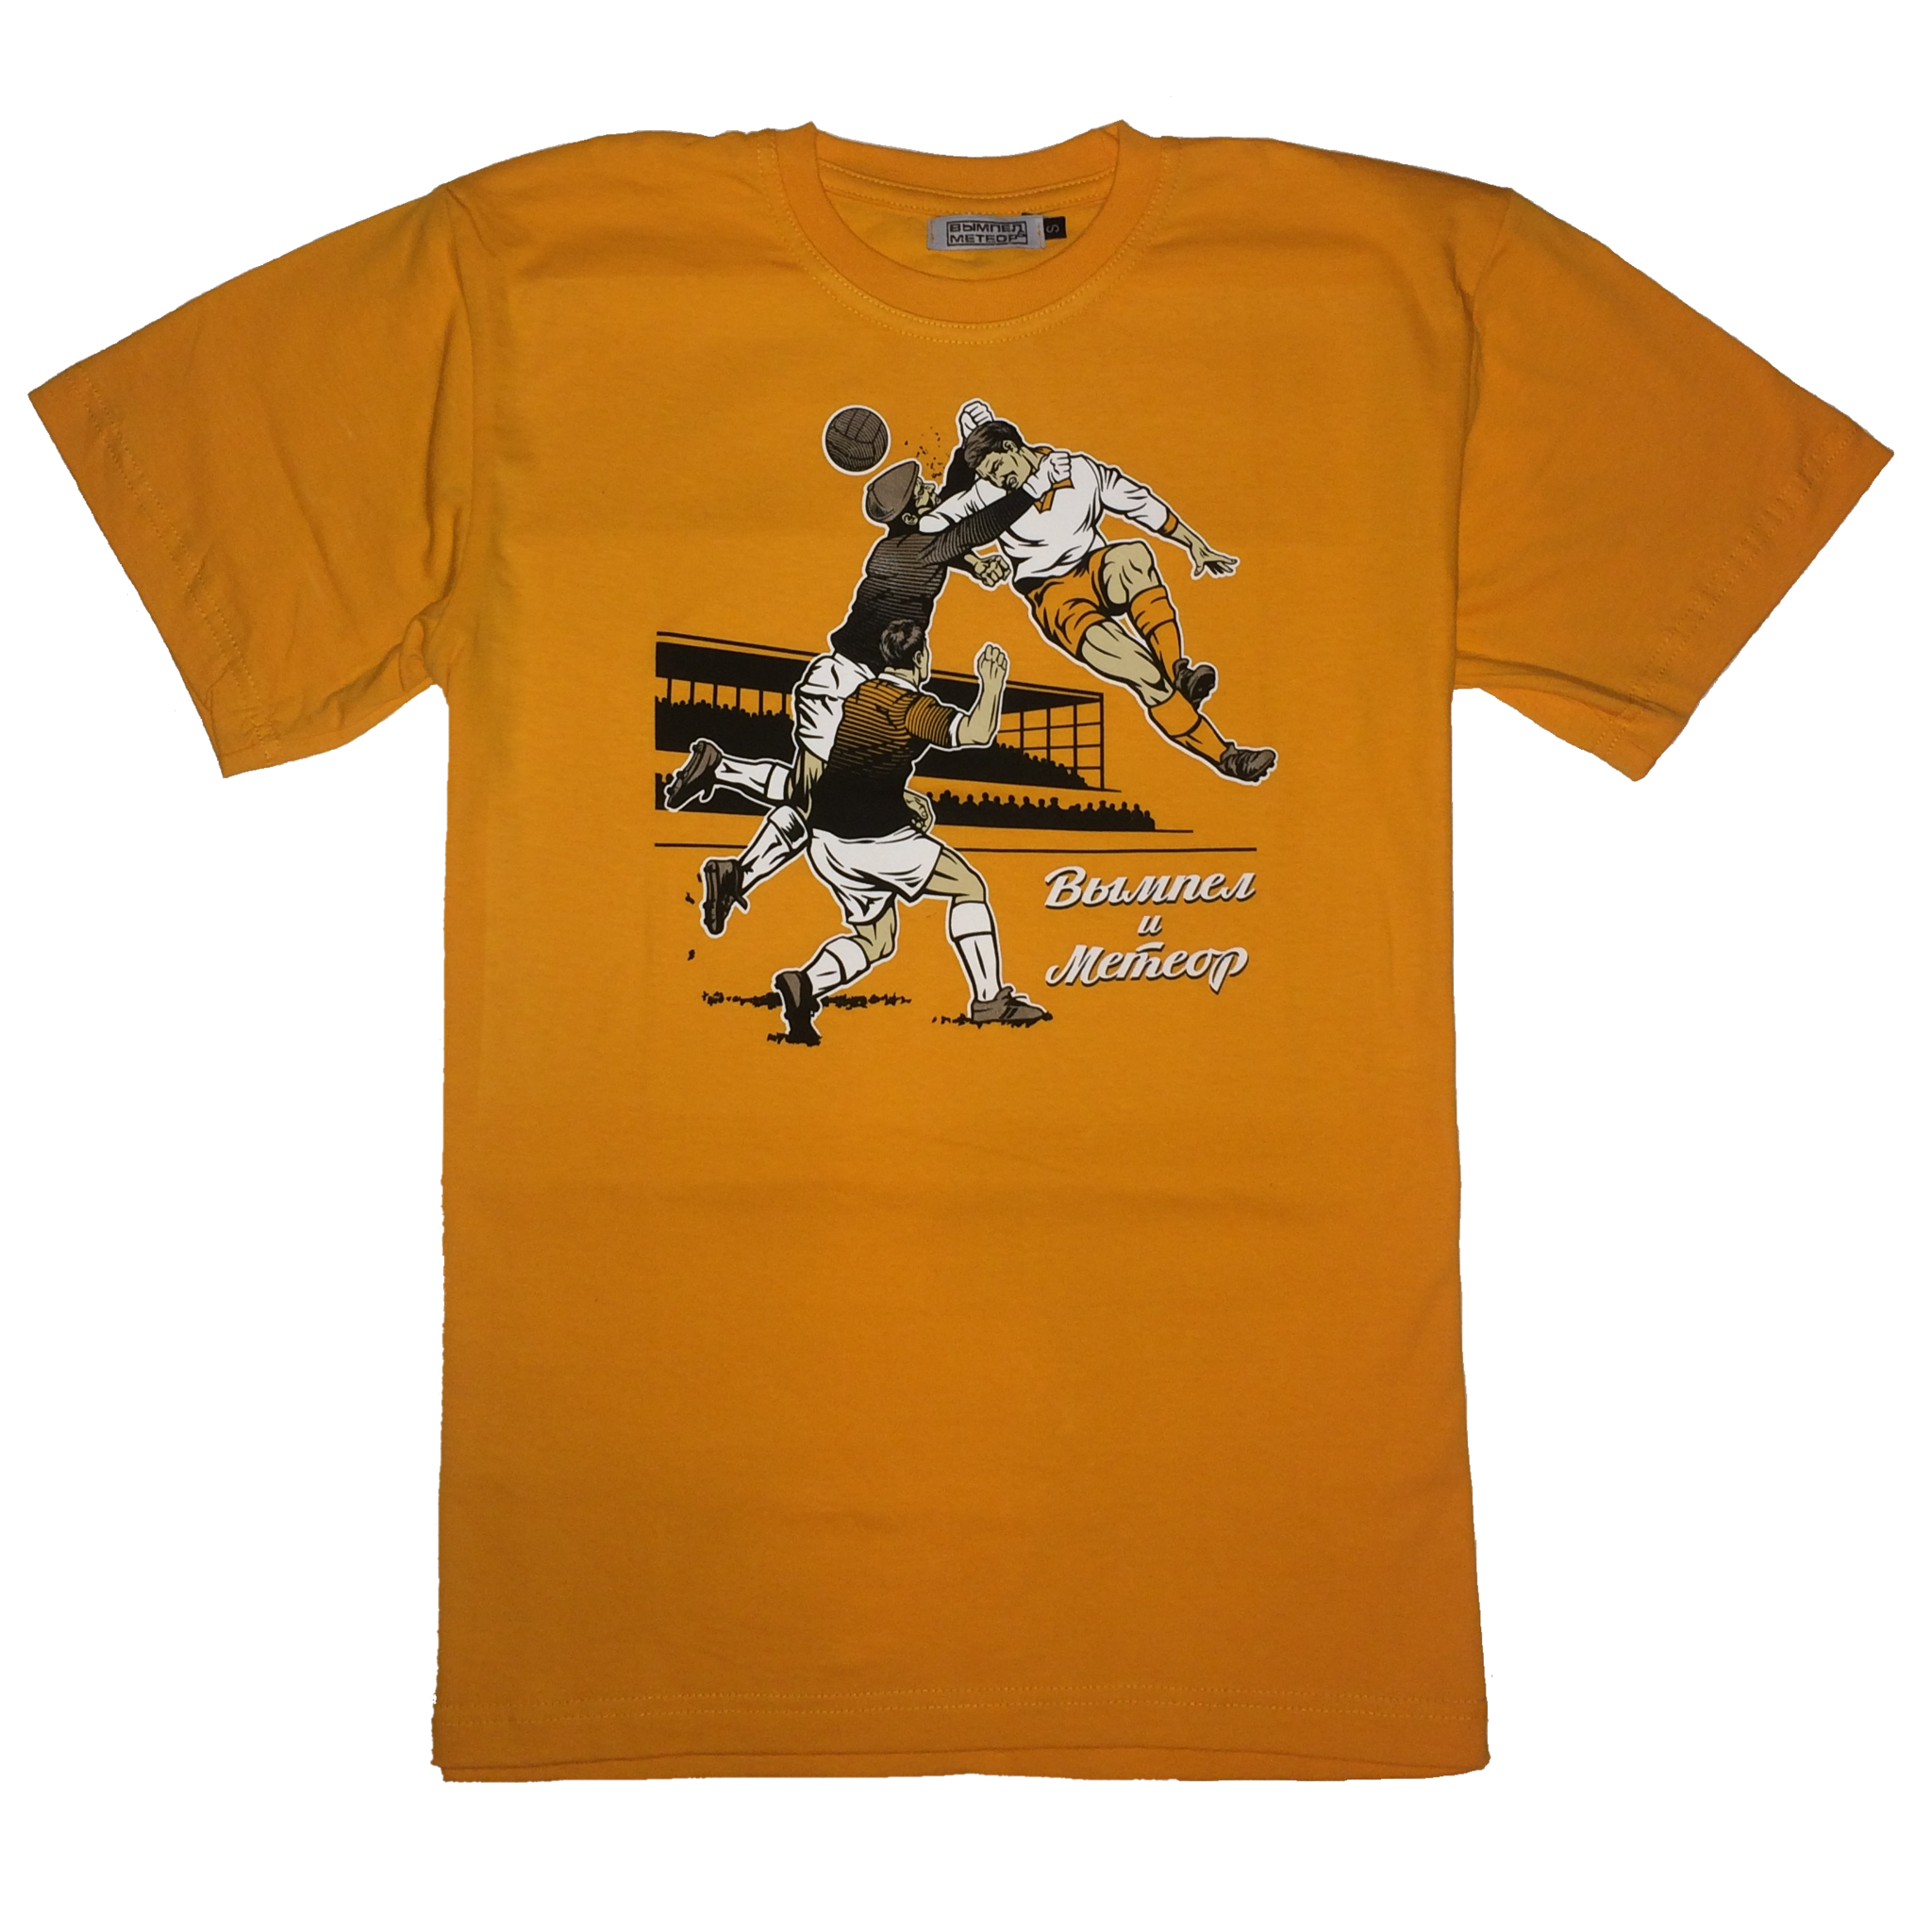 Clash yellow t-shirt